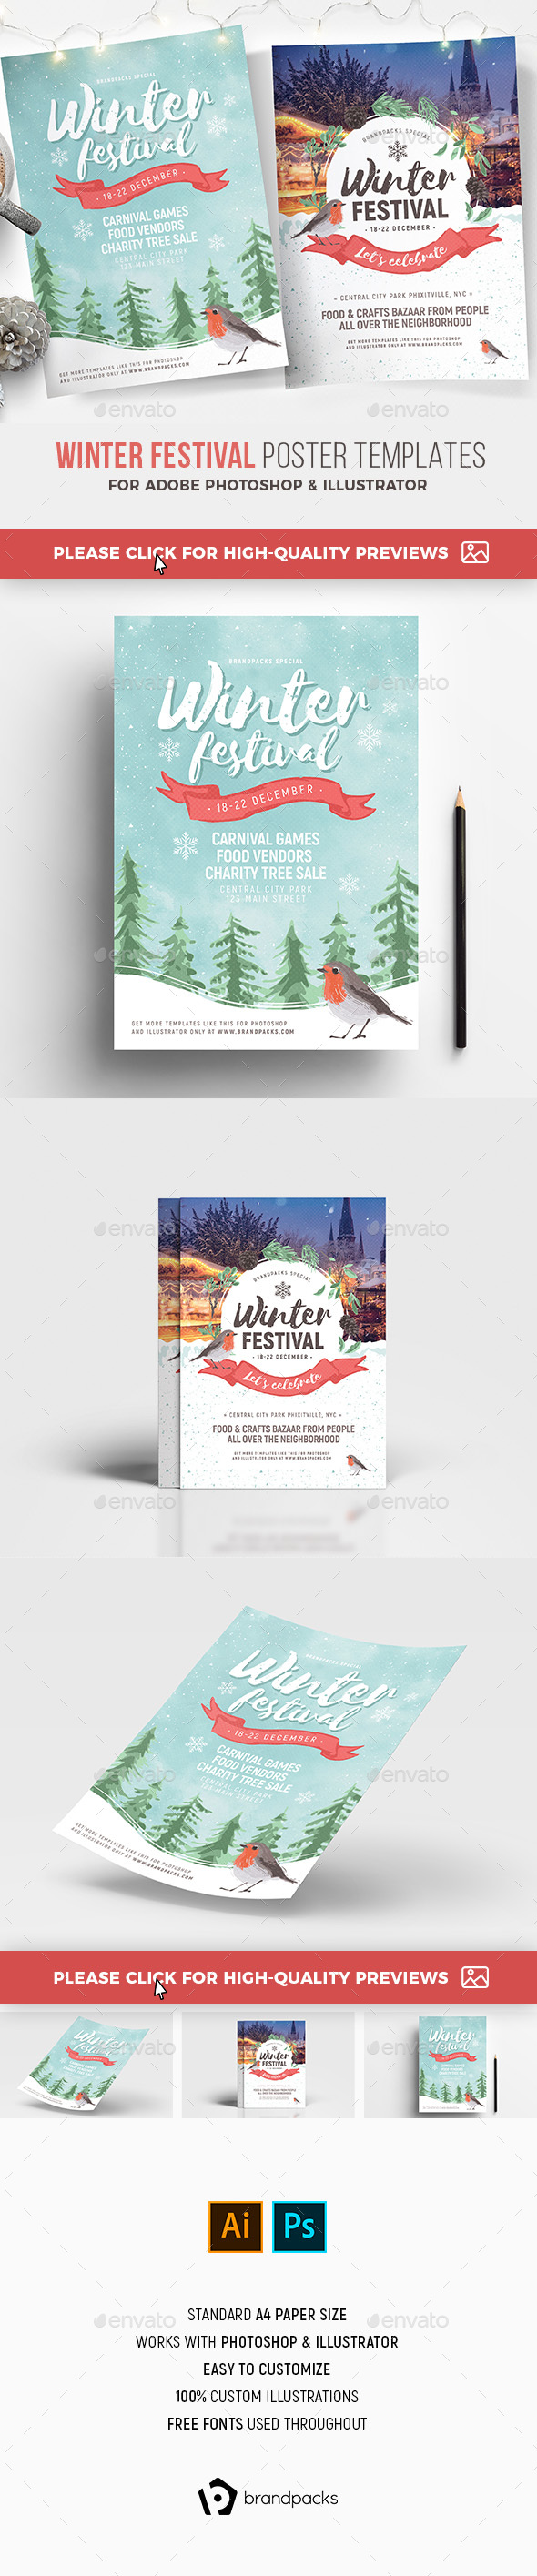 Winter Festival Poster / Flyer Template - Holidays Events